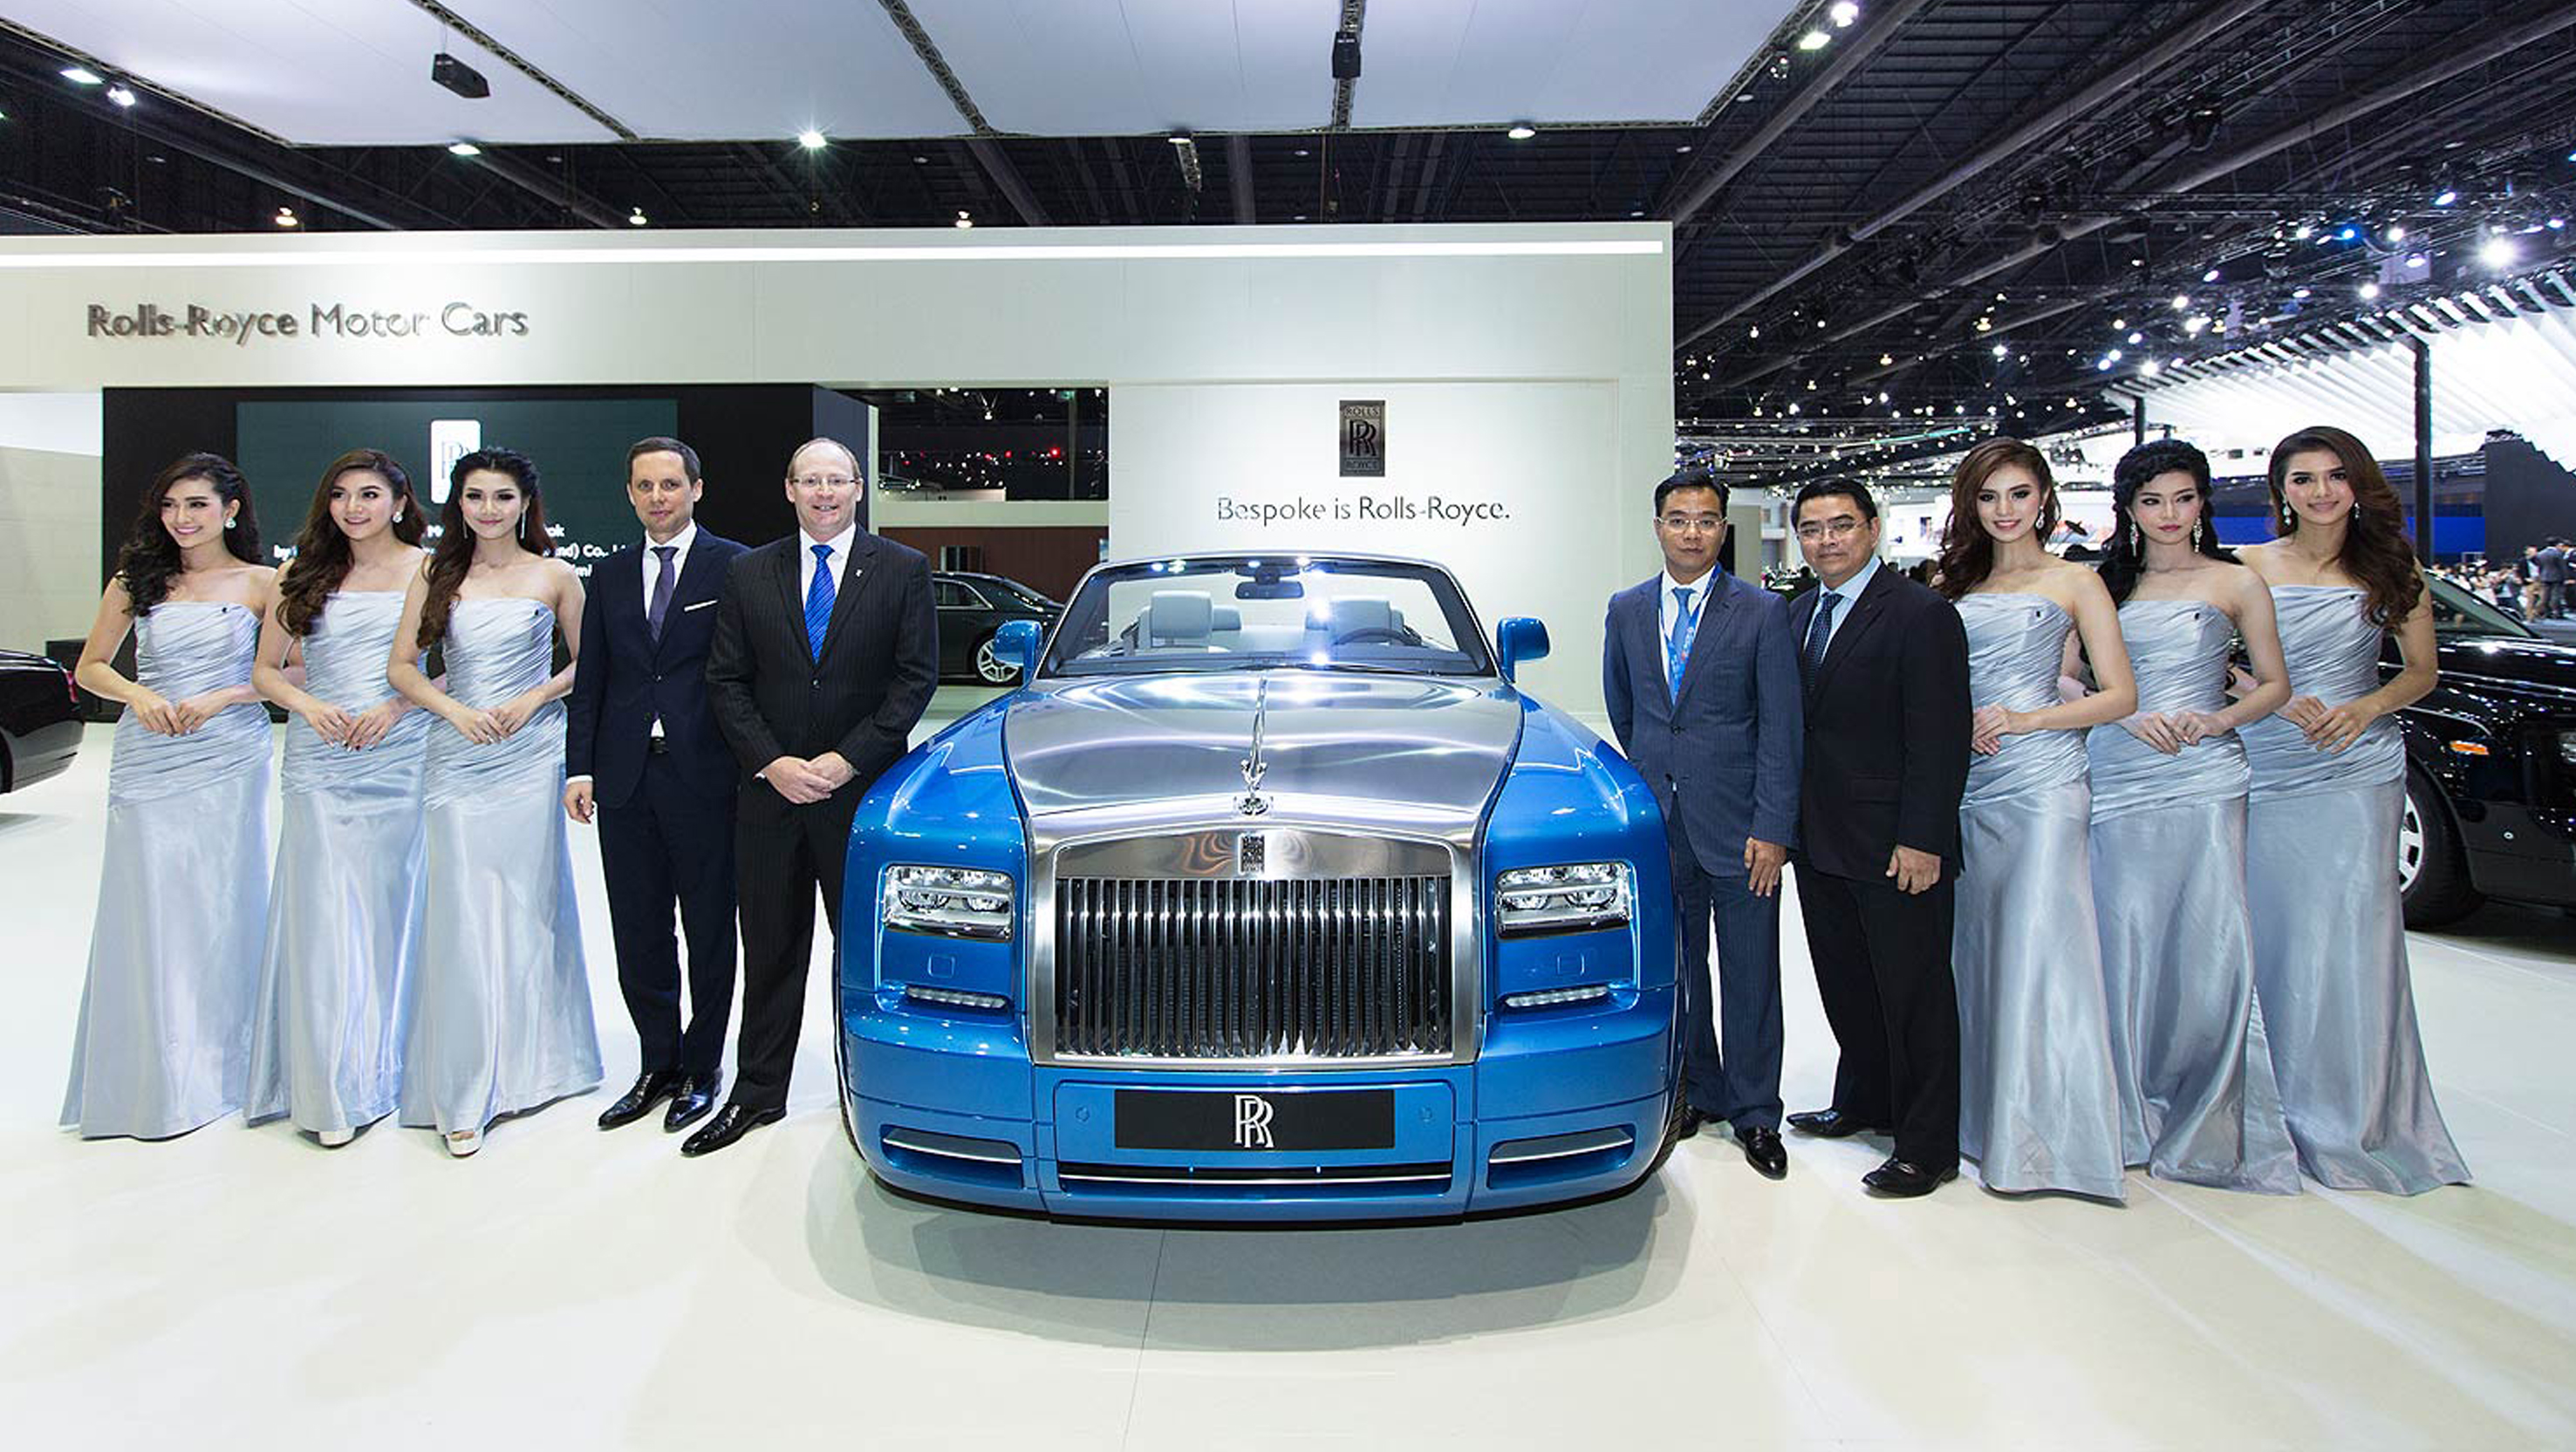 Hybrid Turbos blog post Bangkok Motor Show Rolls-Royce Phantom Drophead Coupé Waterspeed Collection